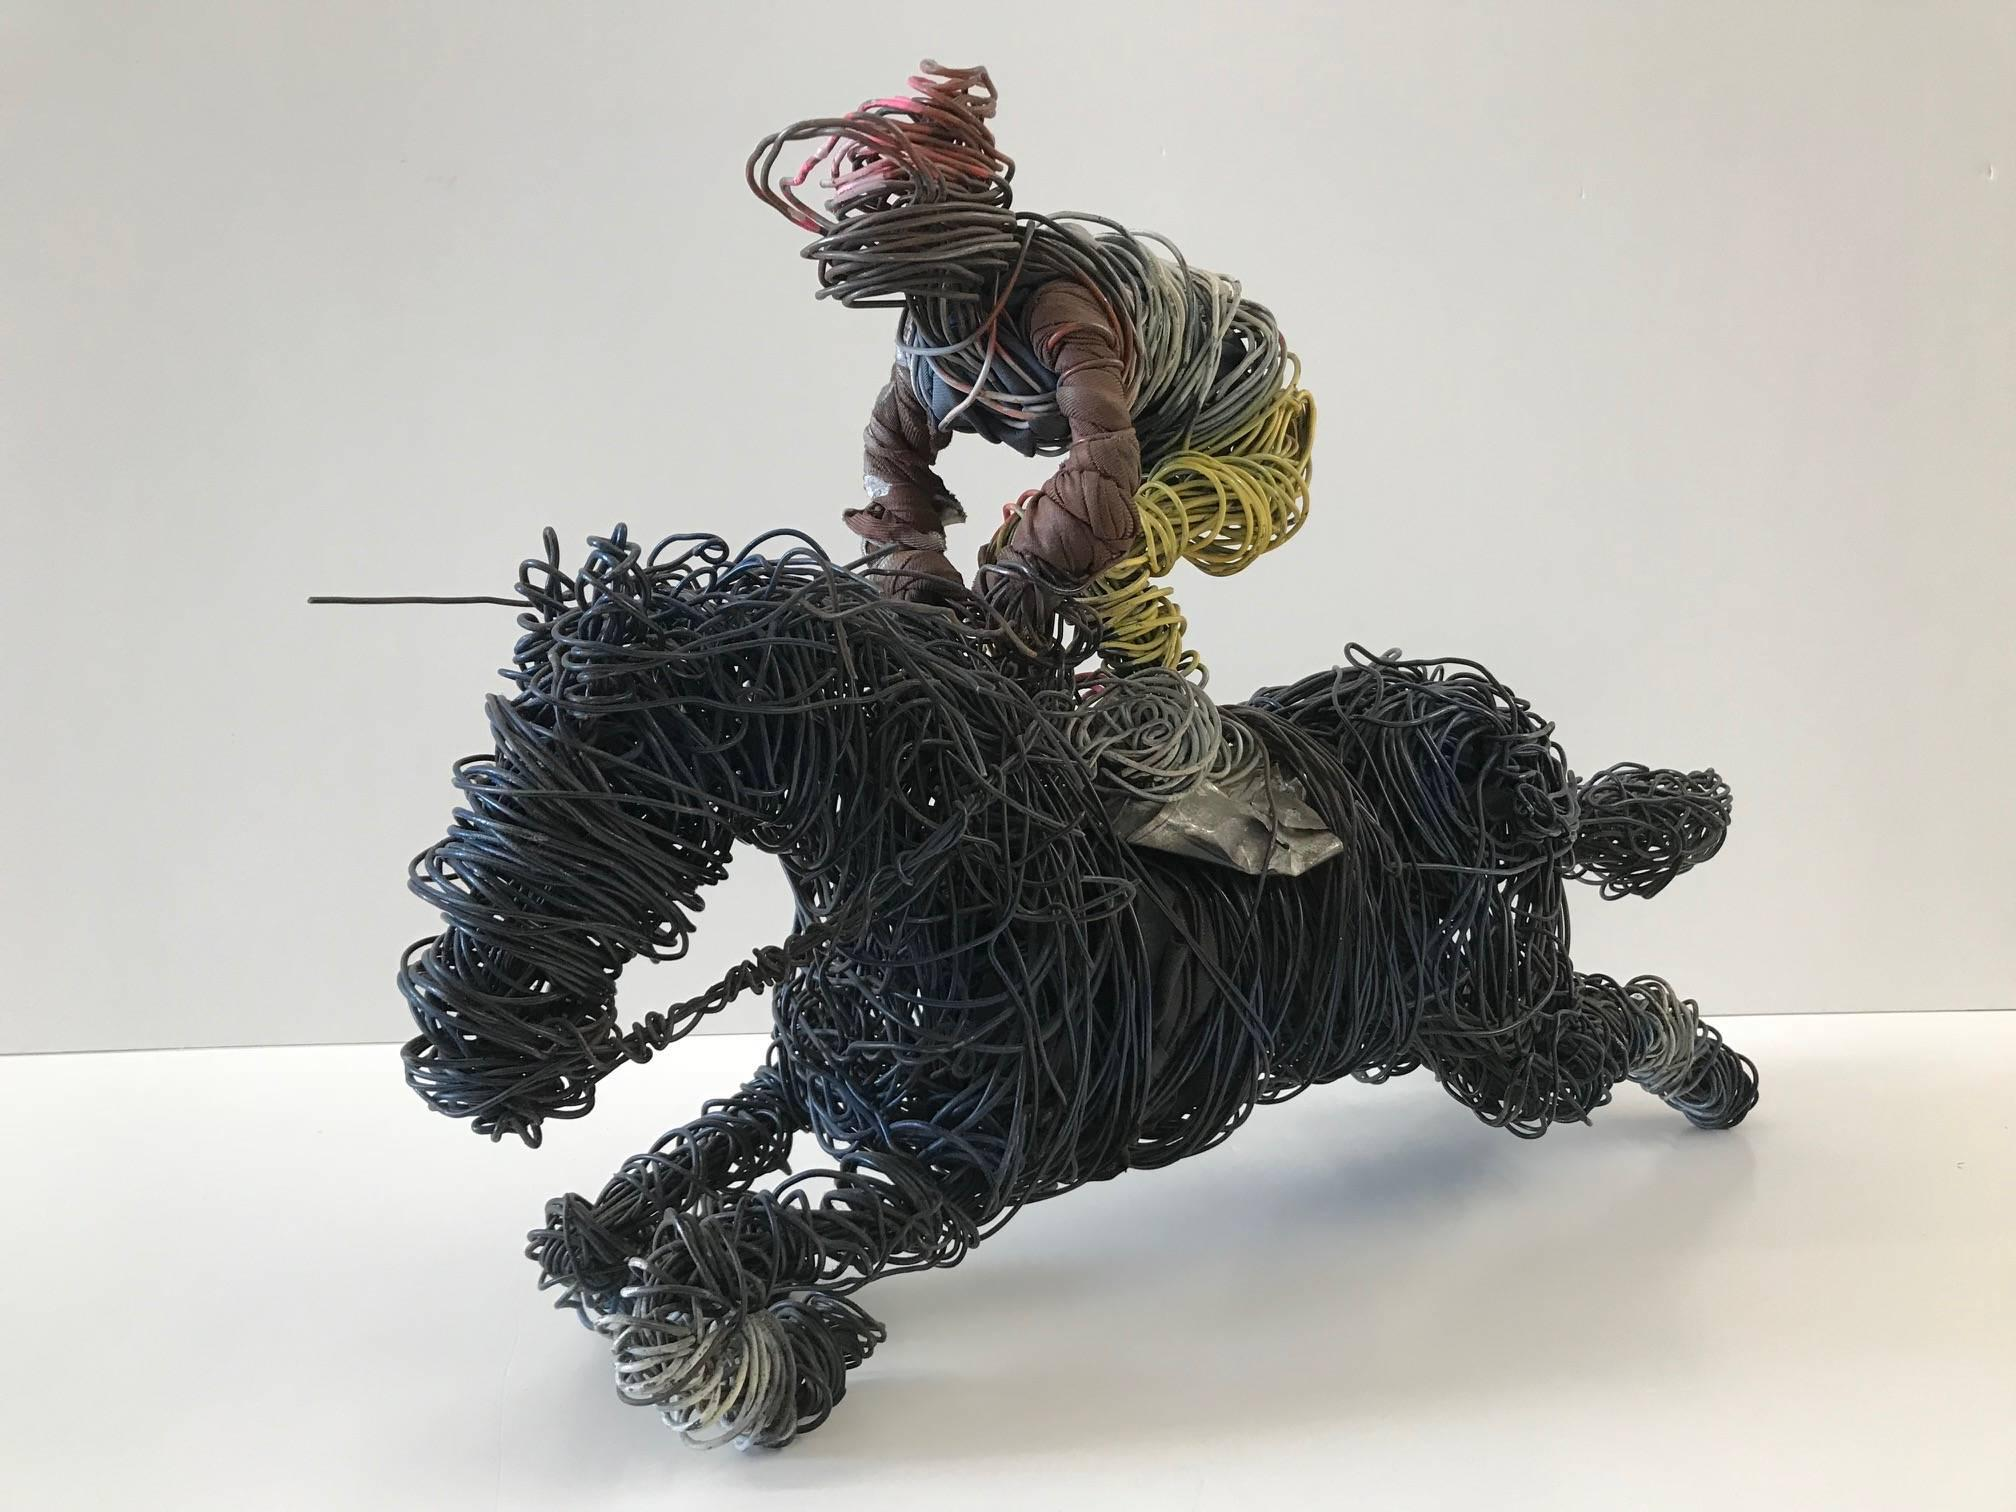 Untitled (Wired Jockey on Horse Sculpture)